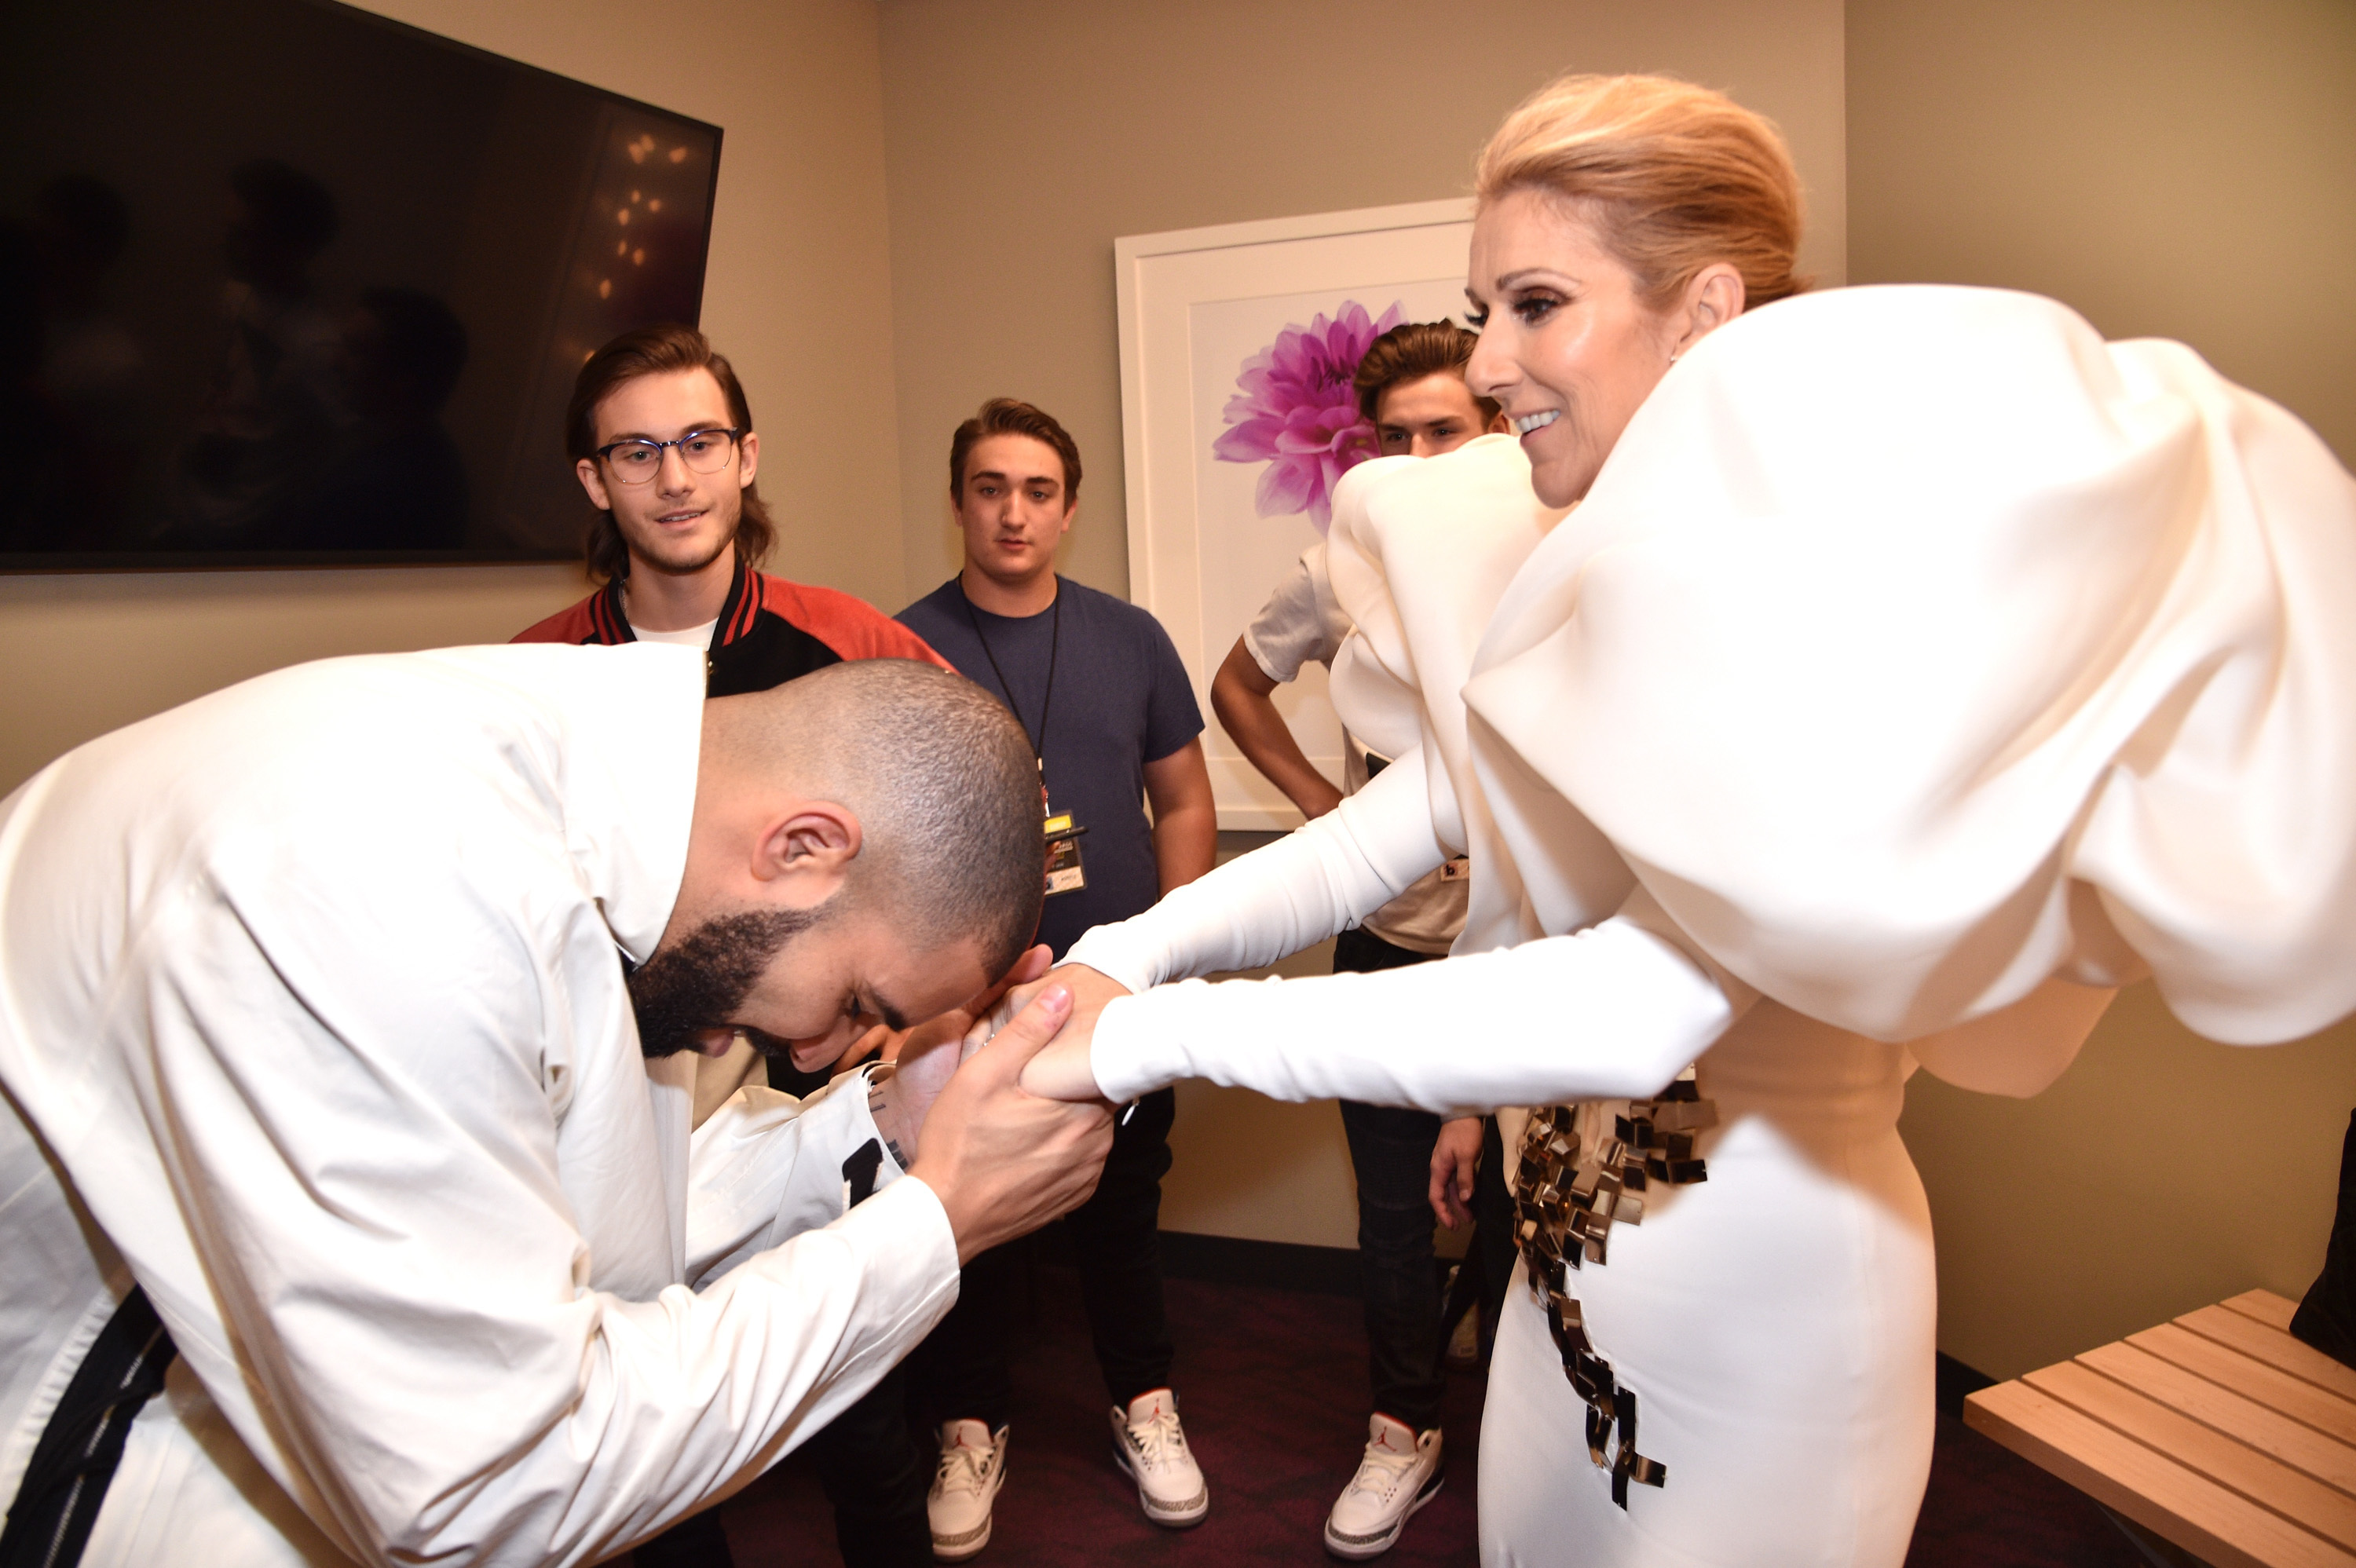 Even Drake bowed down to her